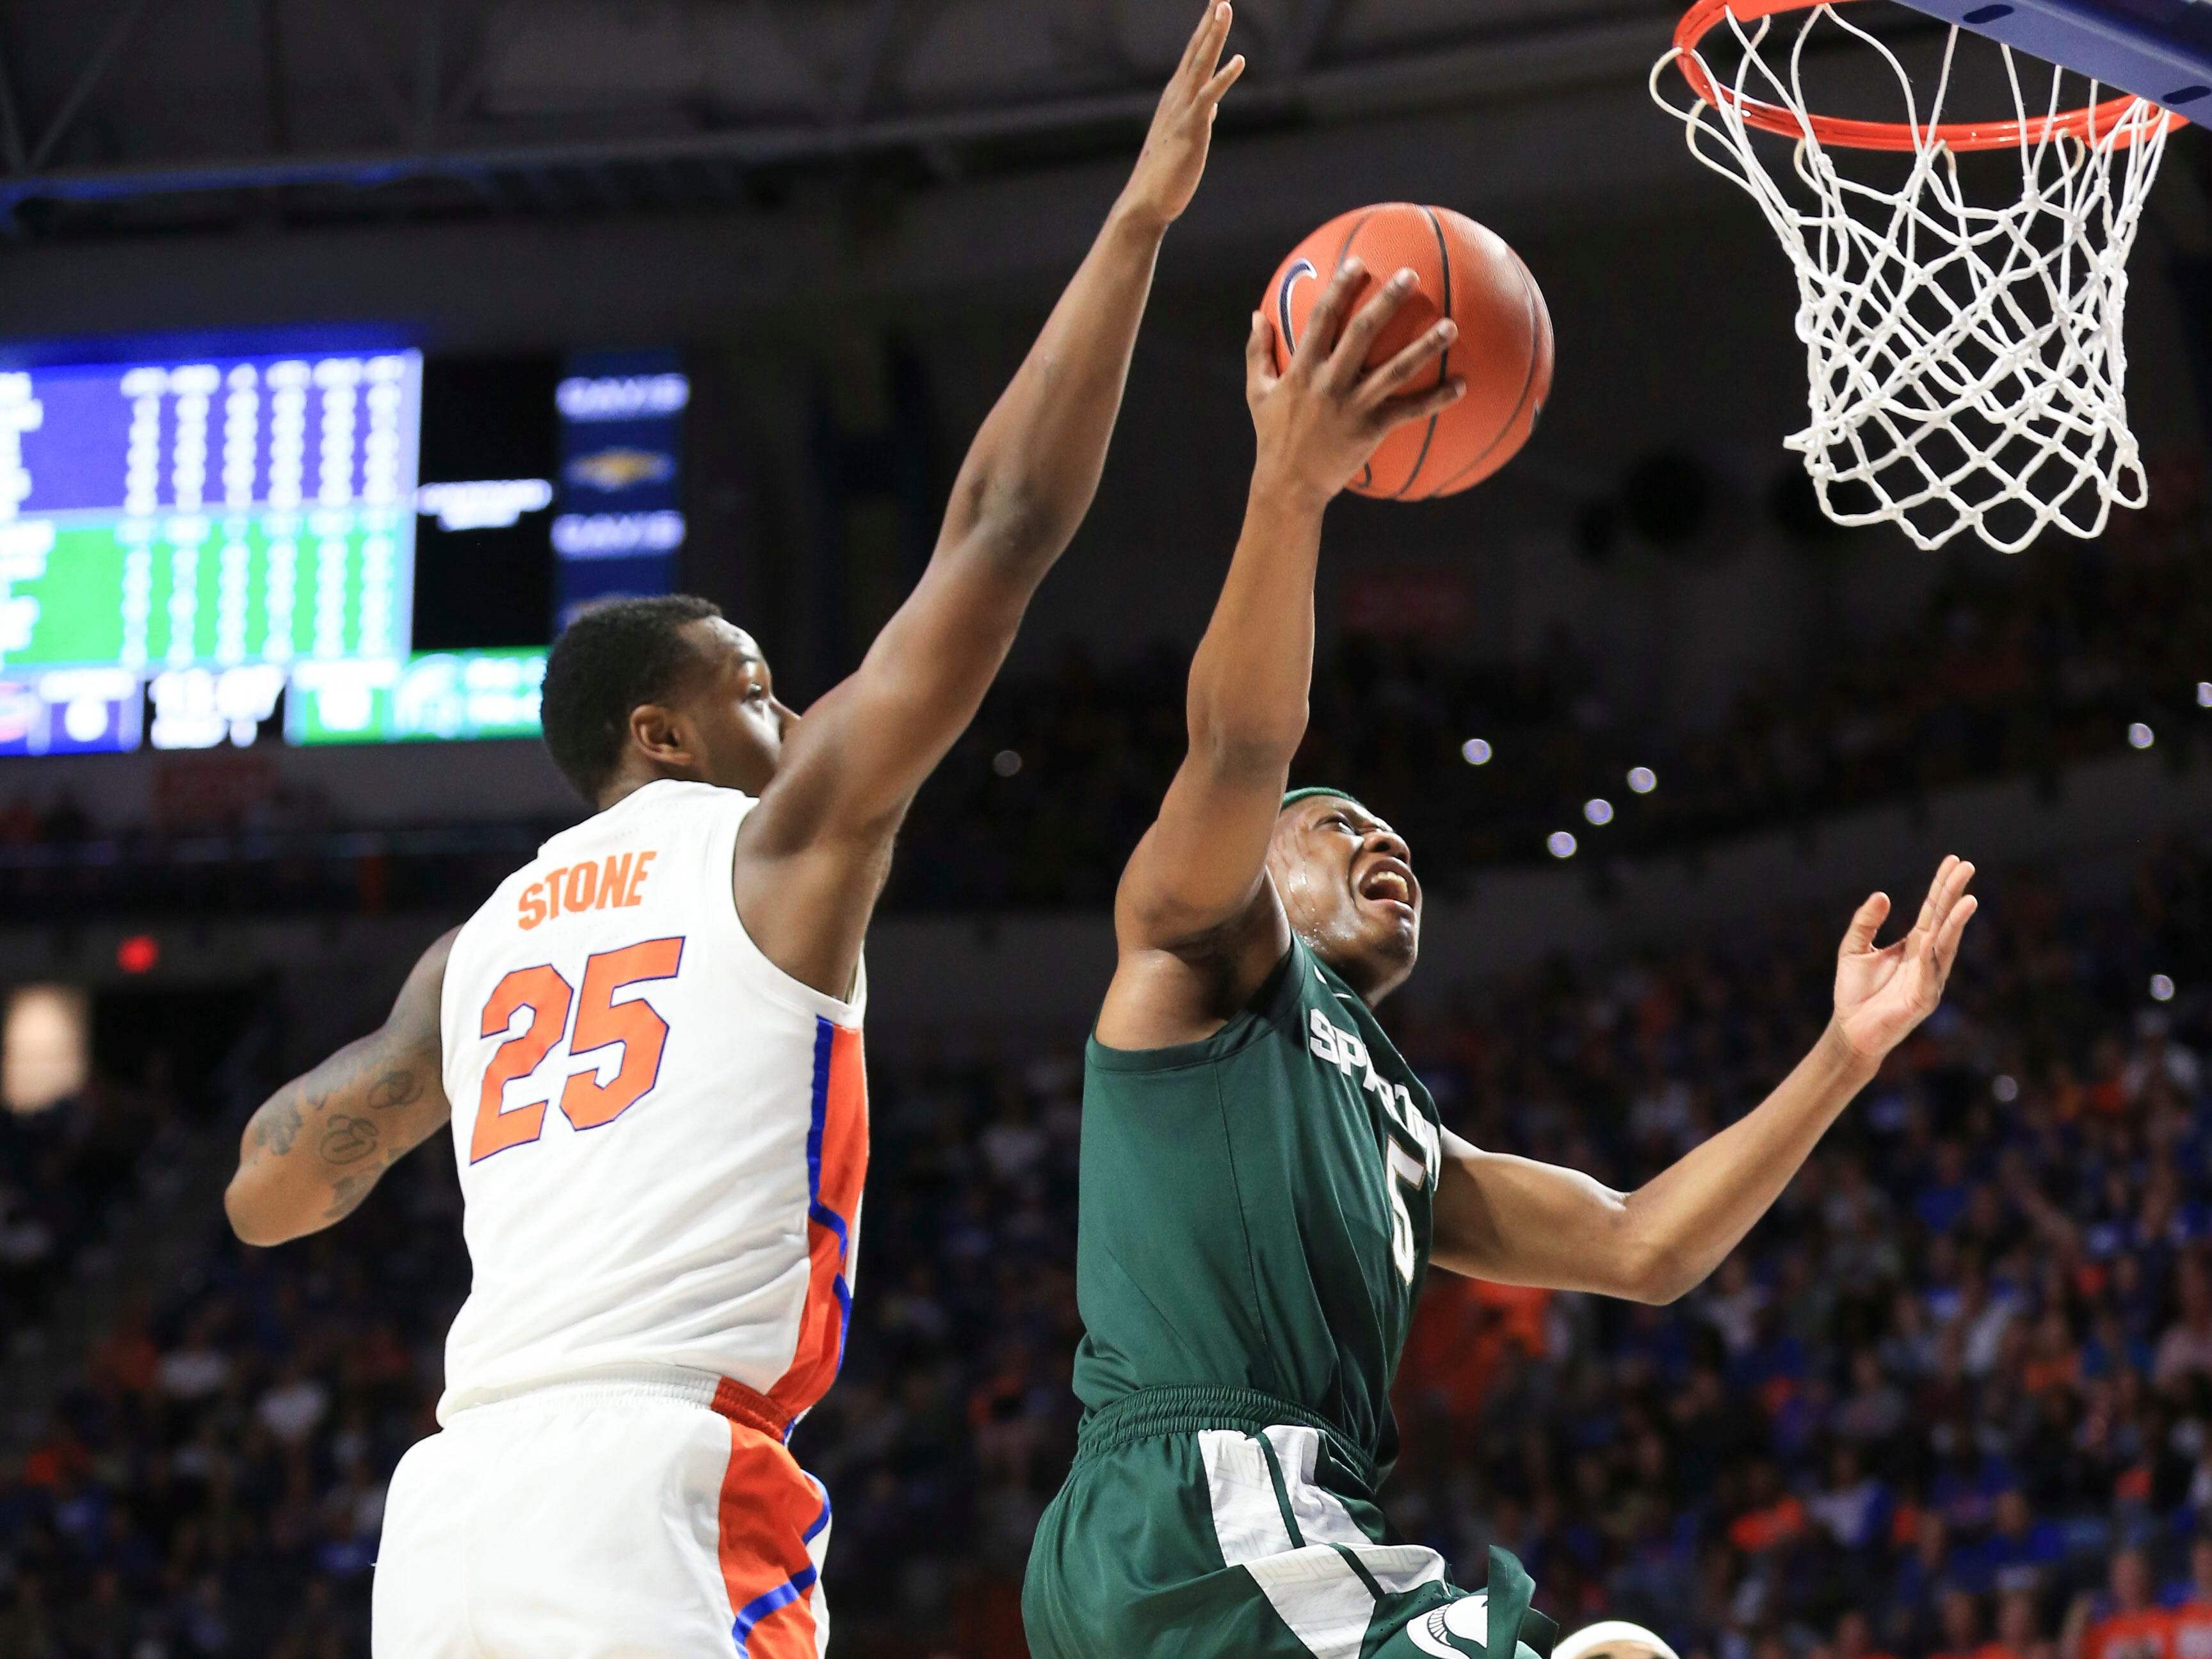 Michigan State guard Cassius Winston (5) makes a layup past Florida forward Keith Stone (25) during the first half.